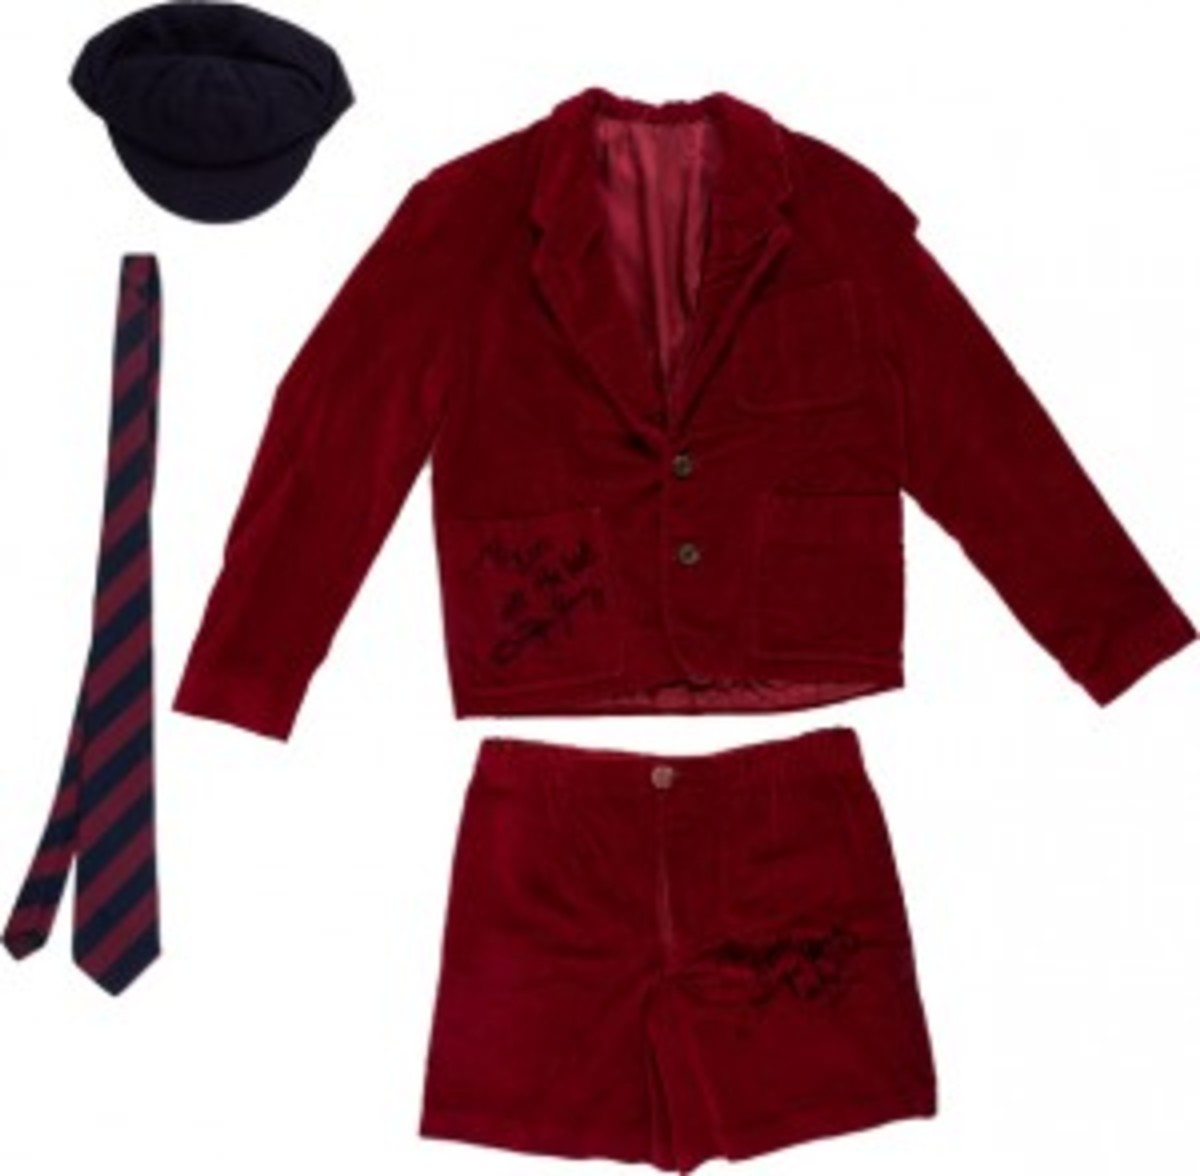 ACDC Angus Young shorts school uniform